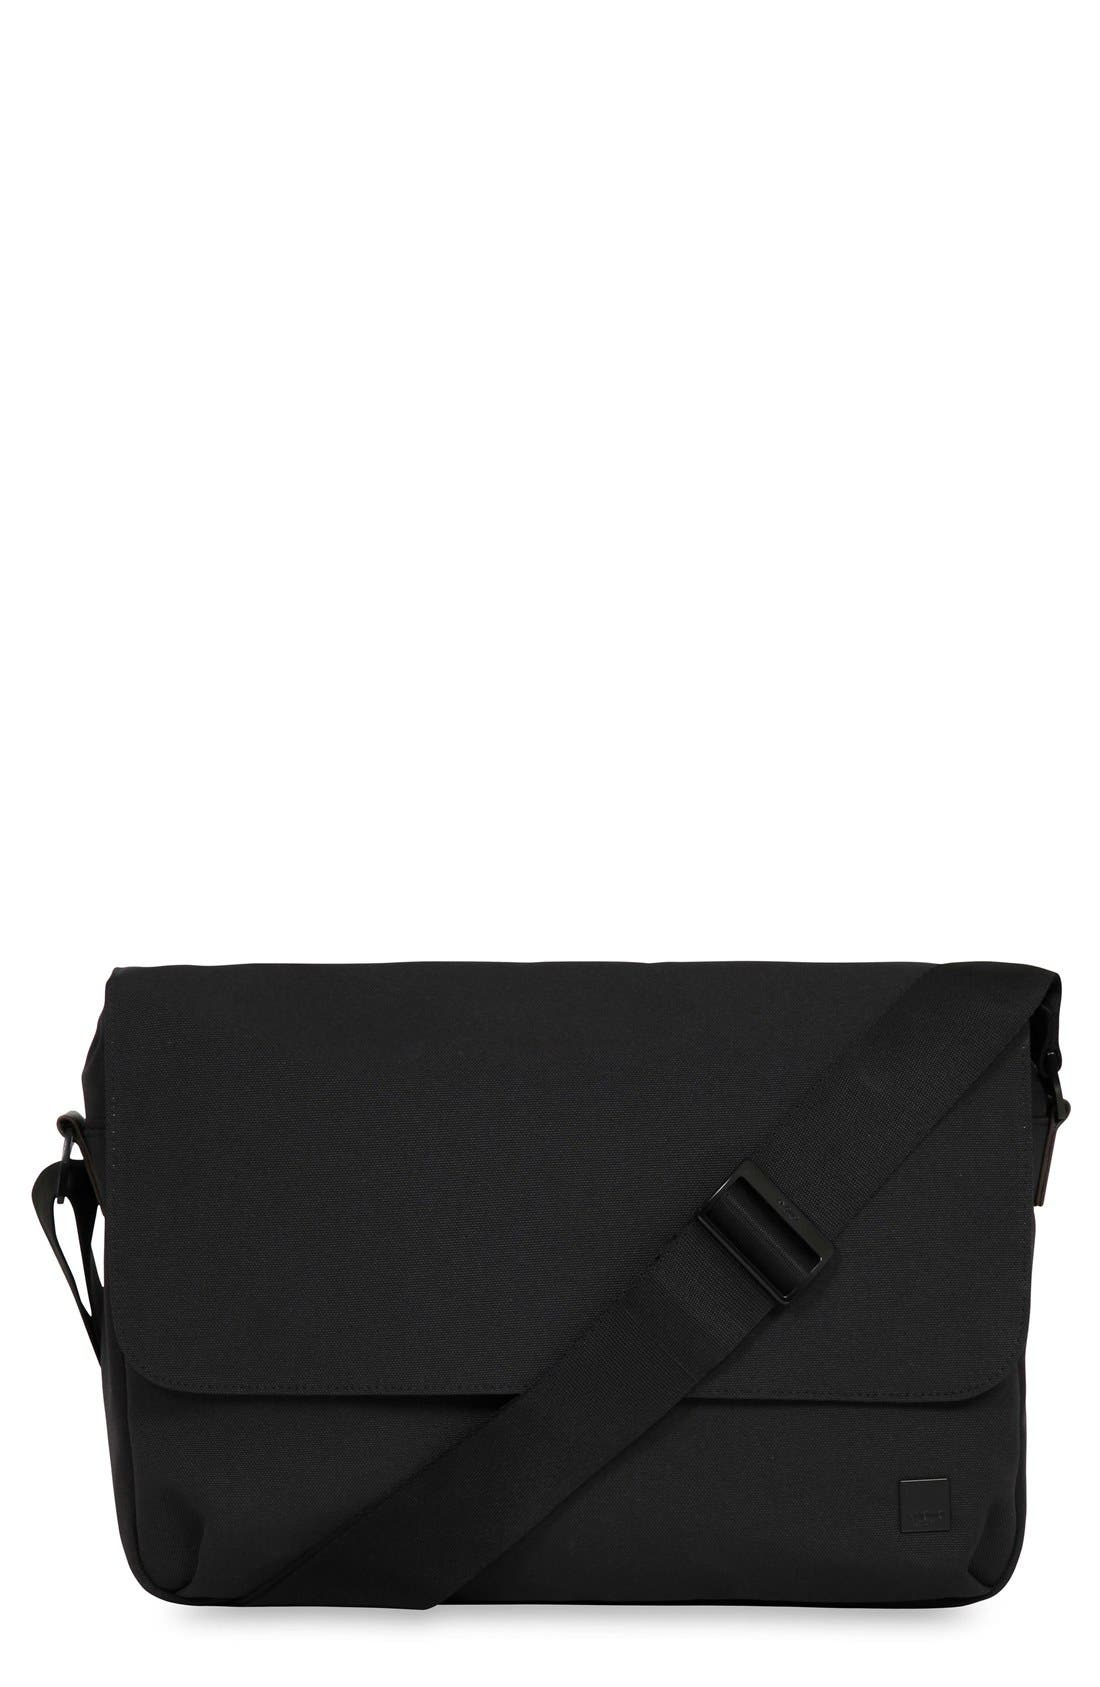 KNOMO London Brompton Osaka Messenger Bag